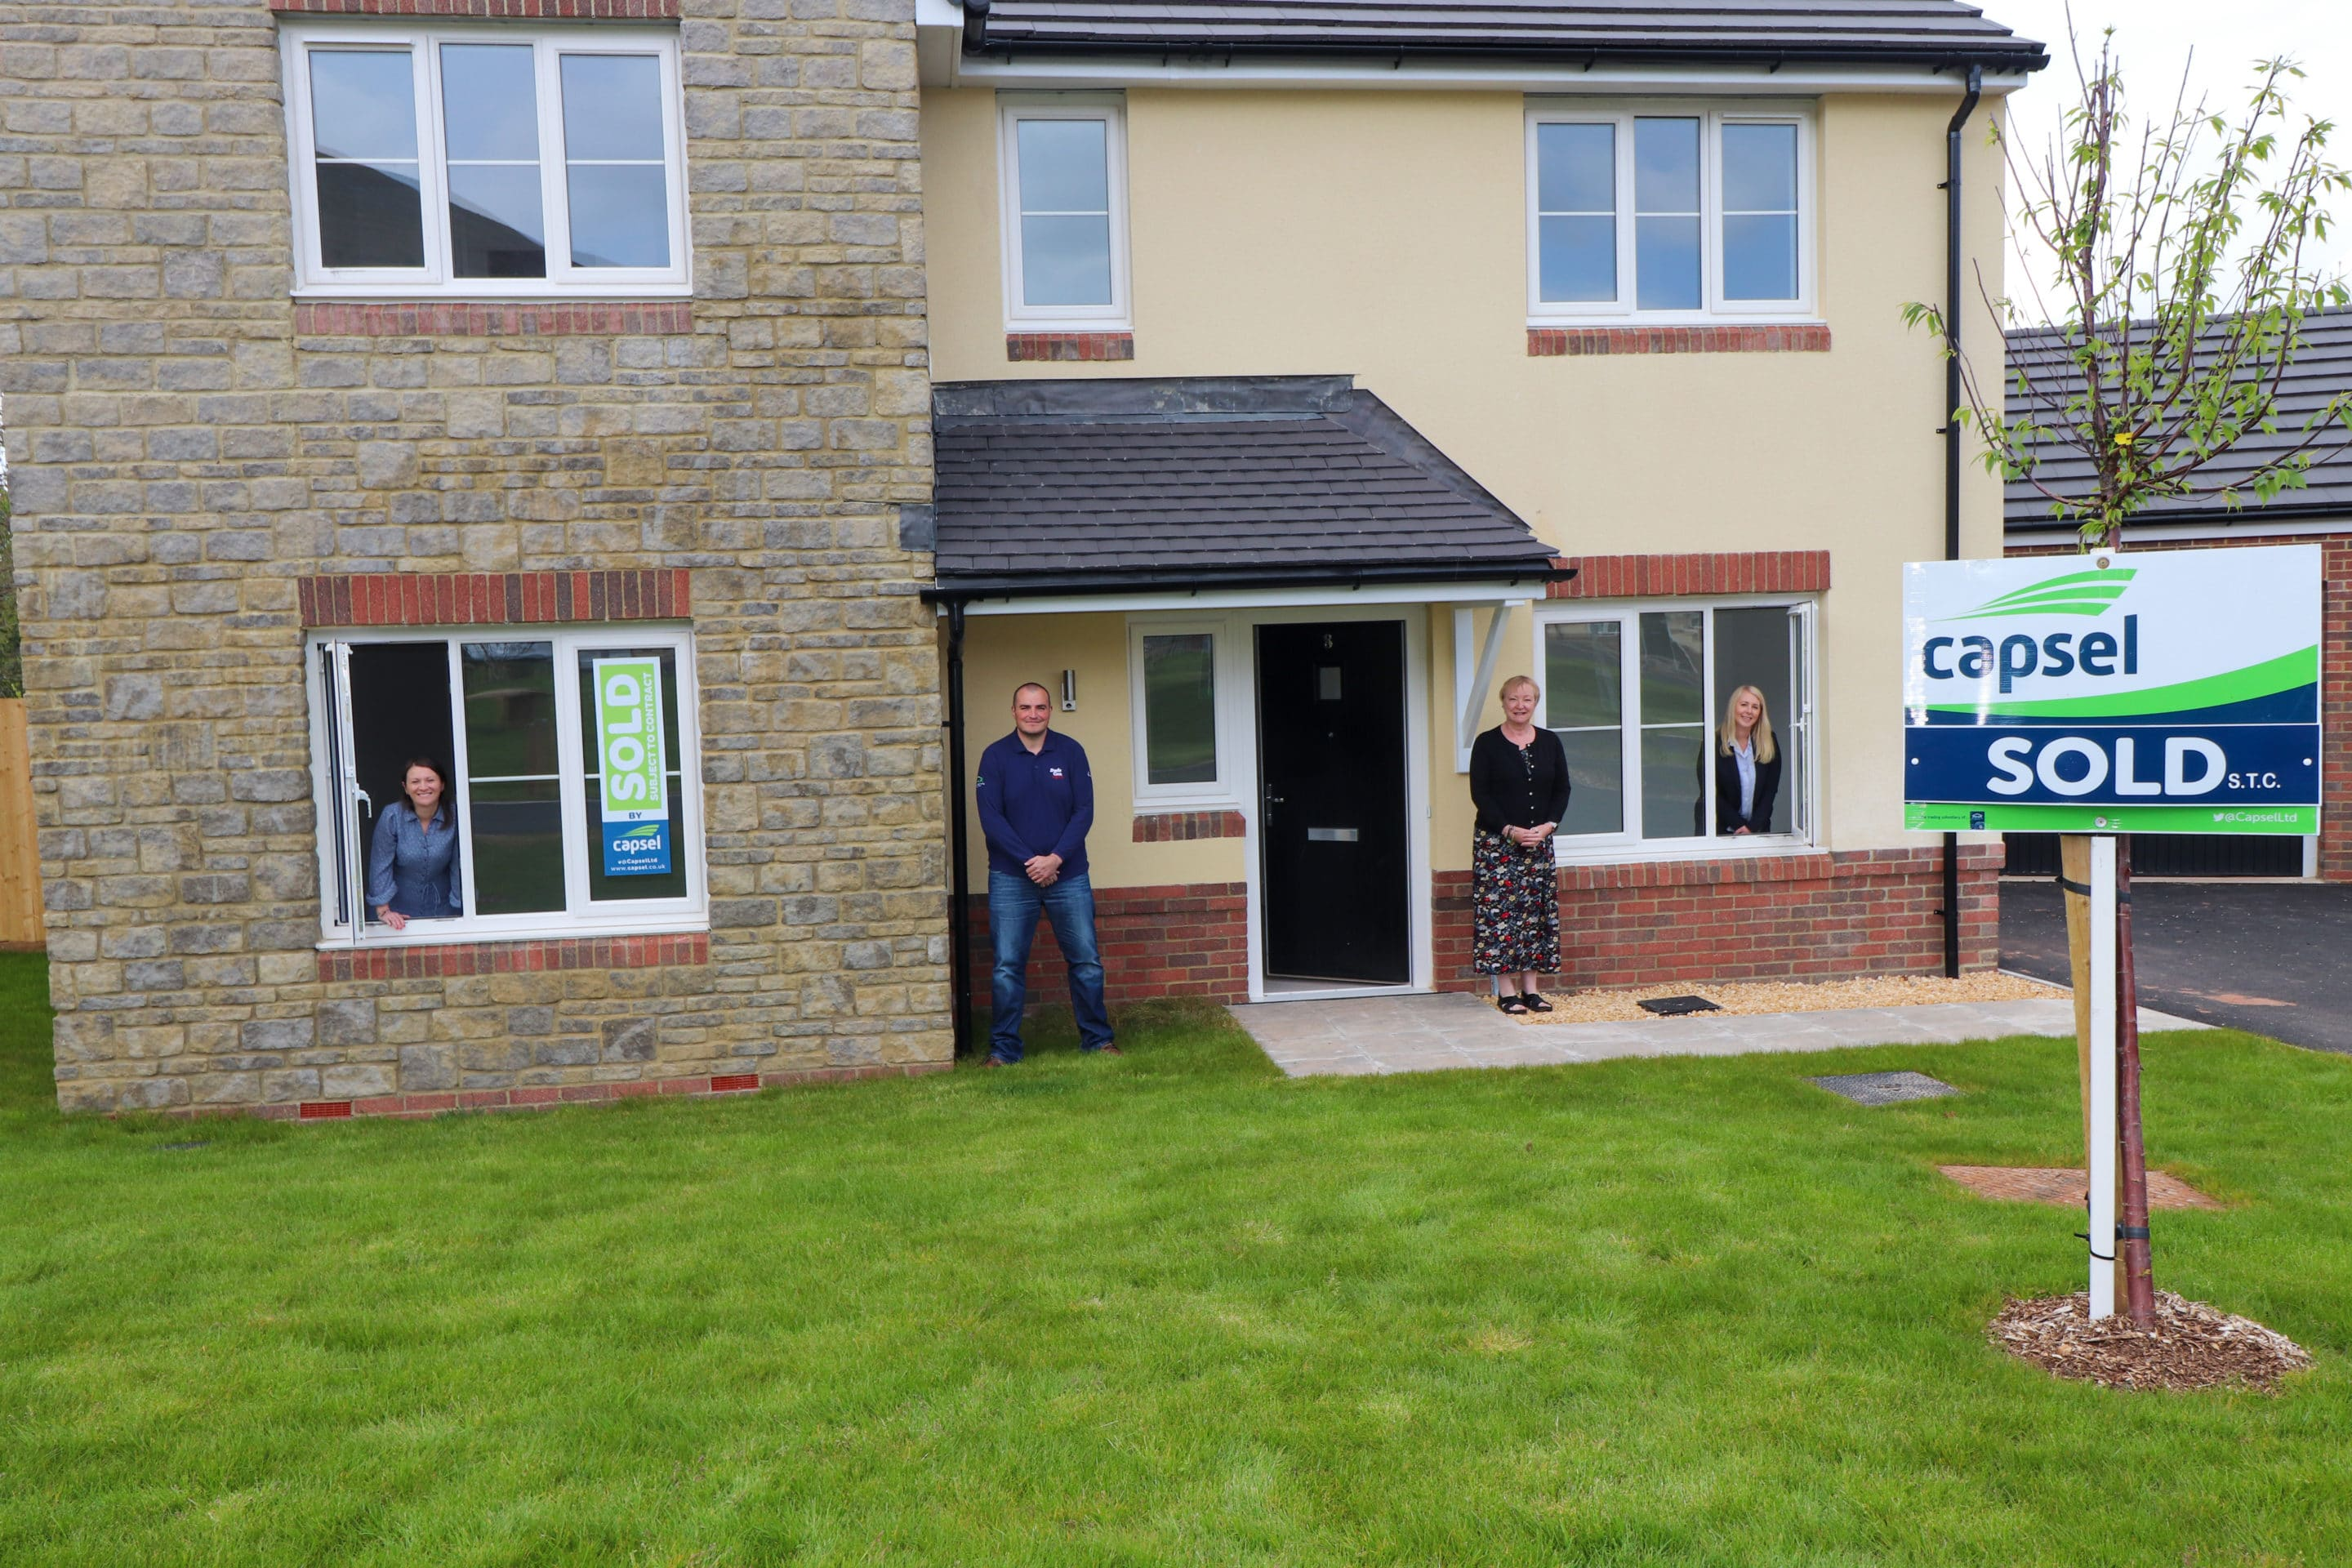 View Capsel Homes gives money back to the community with every sale article